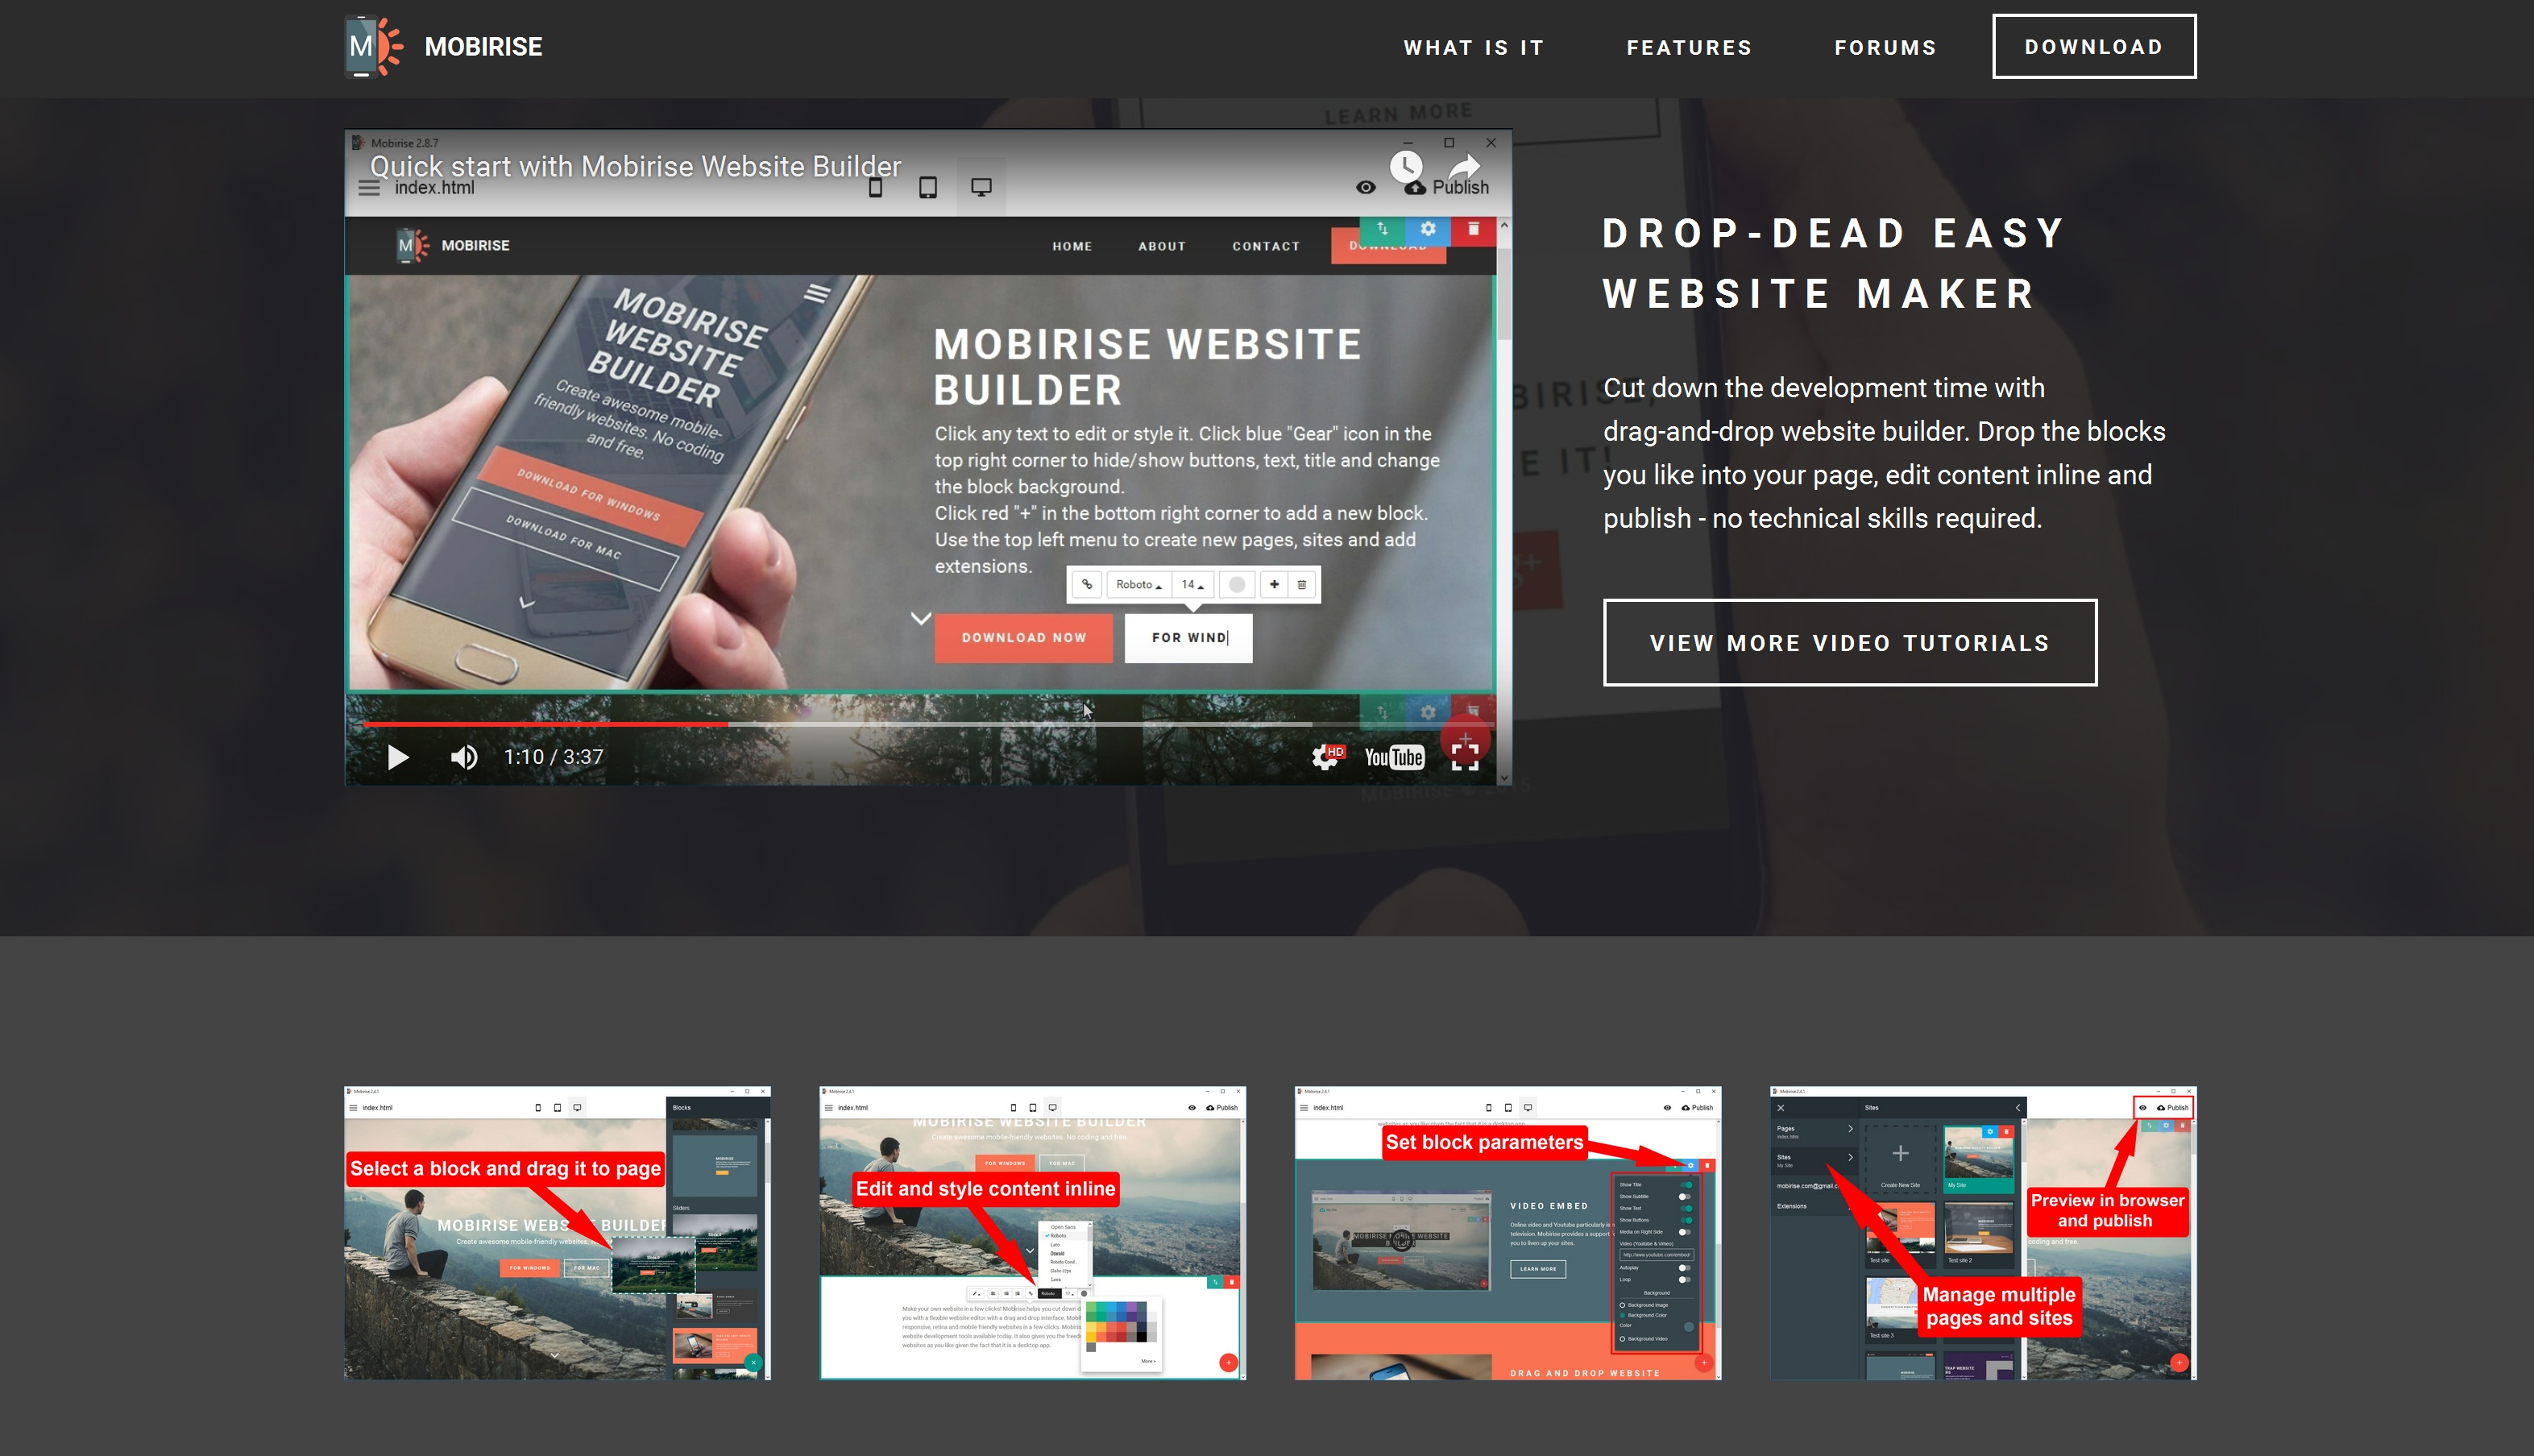 Easy Mobile Website Maker Review